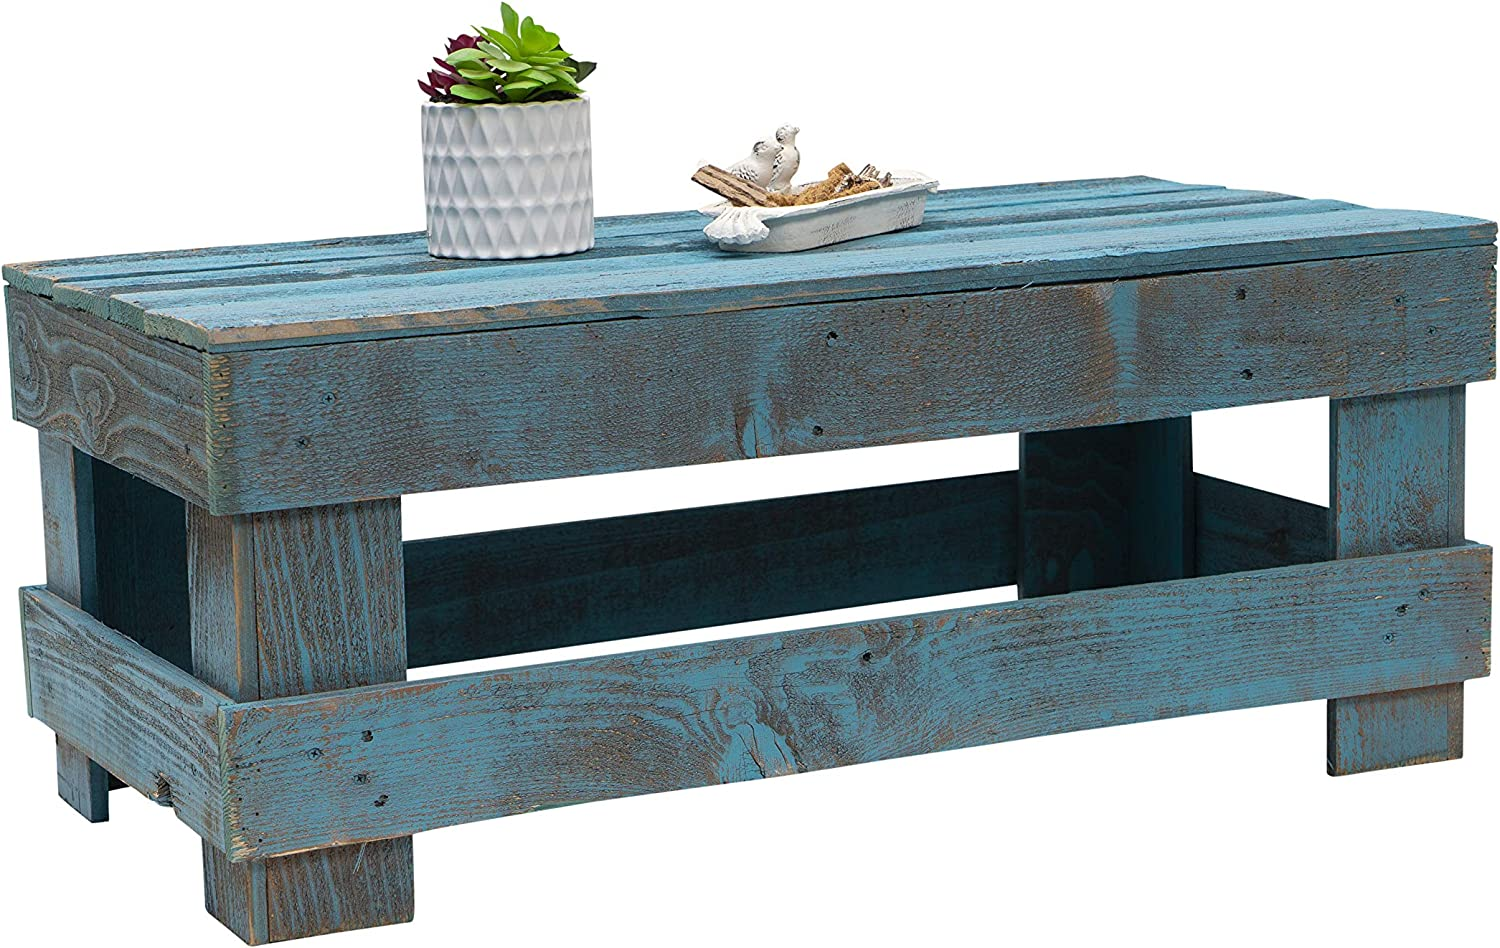 Natural Reclaimed Barnwood Rustic Farmhouse Coffee Table, USA Handmade Country Living Decor (Distressed Turquoise)